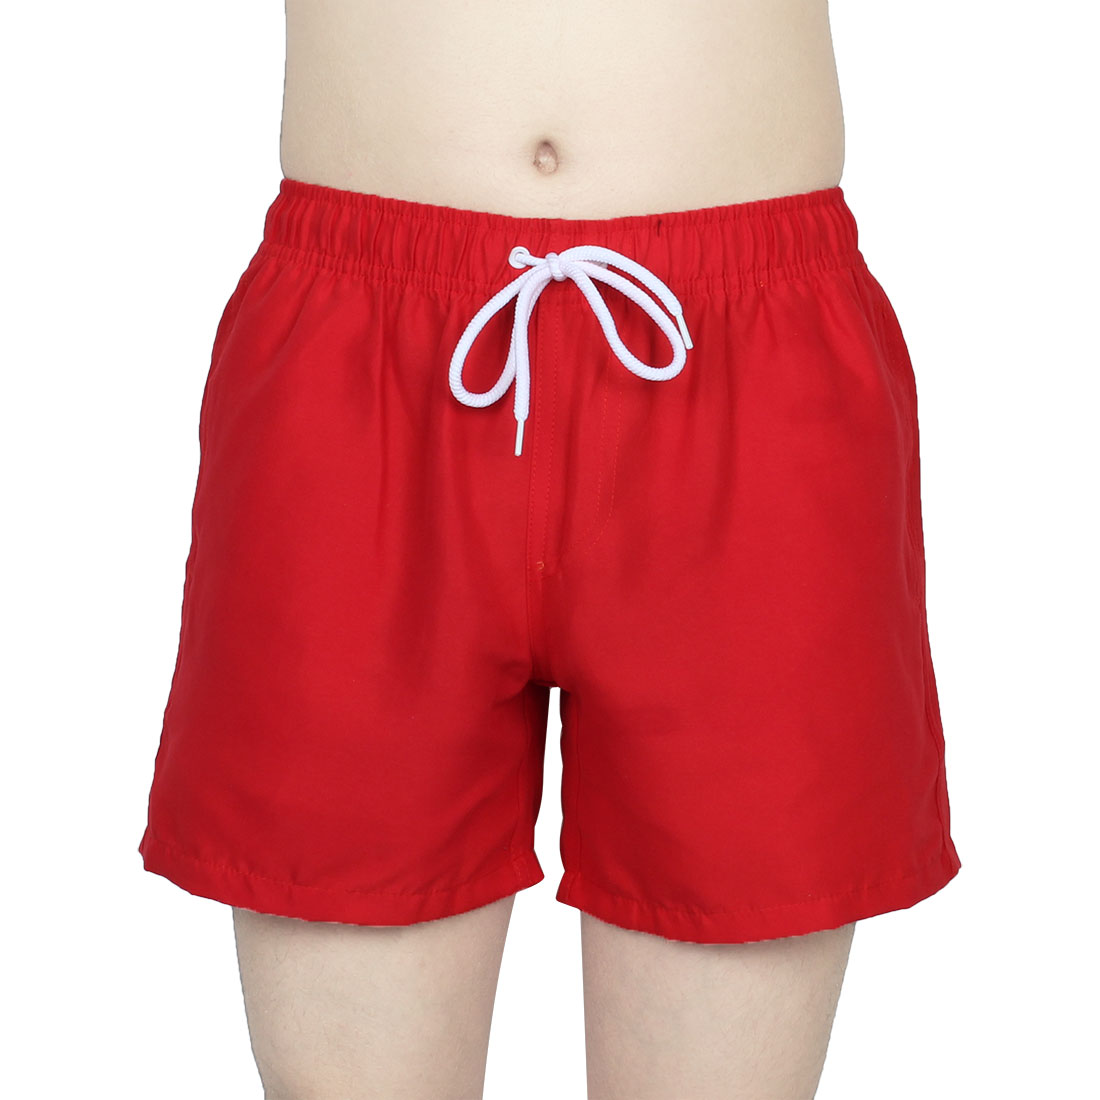 Chetstyle Authorized Men Summer Diving Surfing Beach Shorts Swim Trunks Red W 32